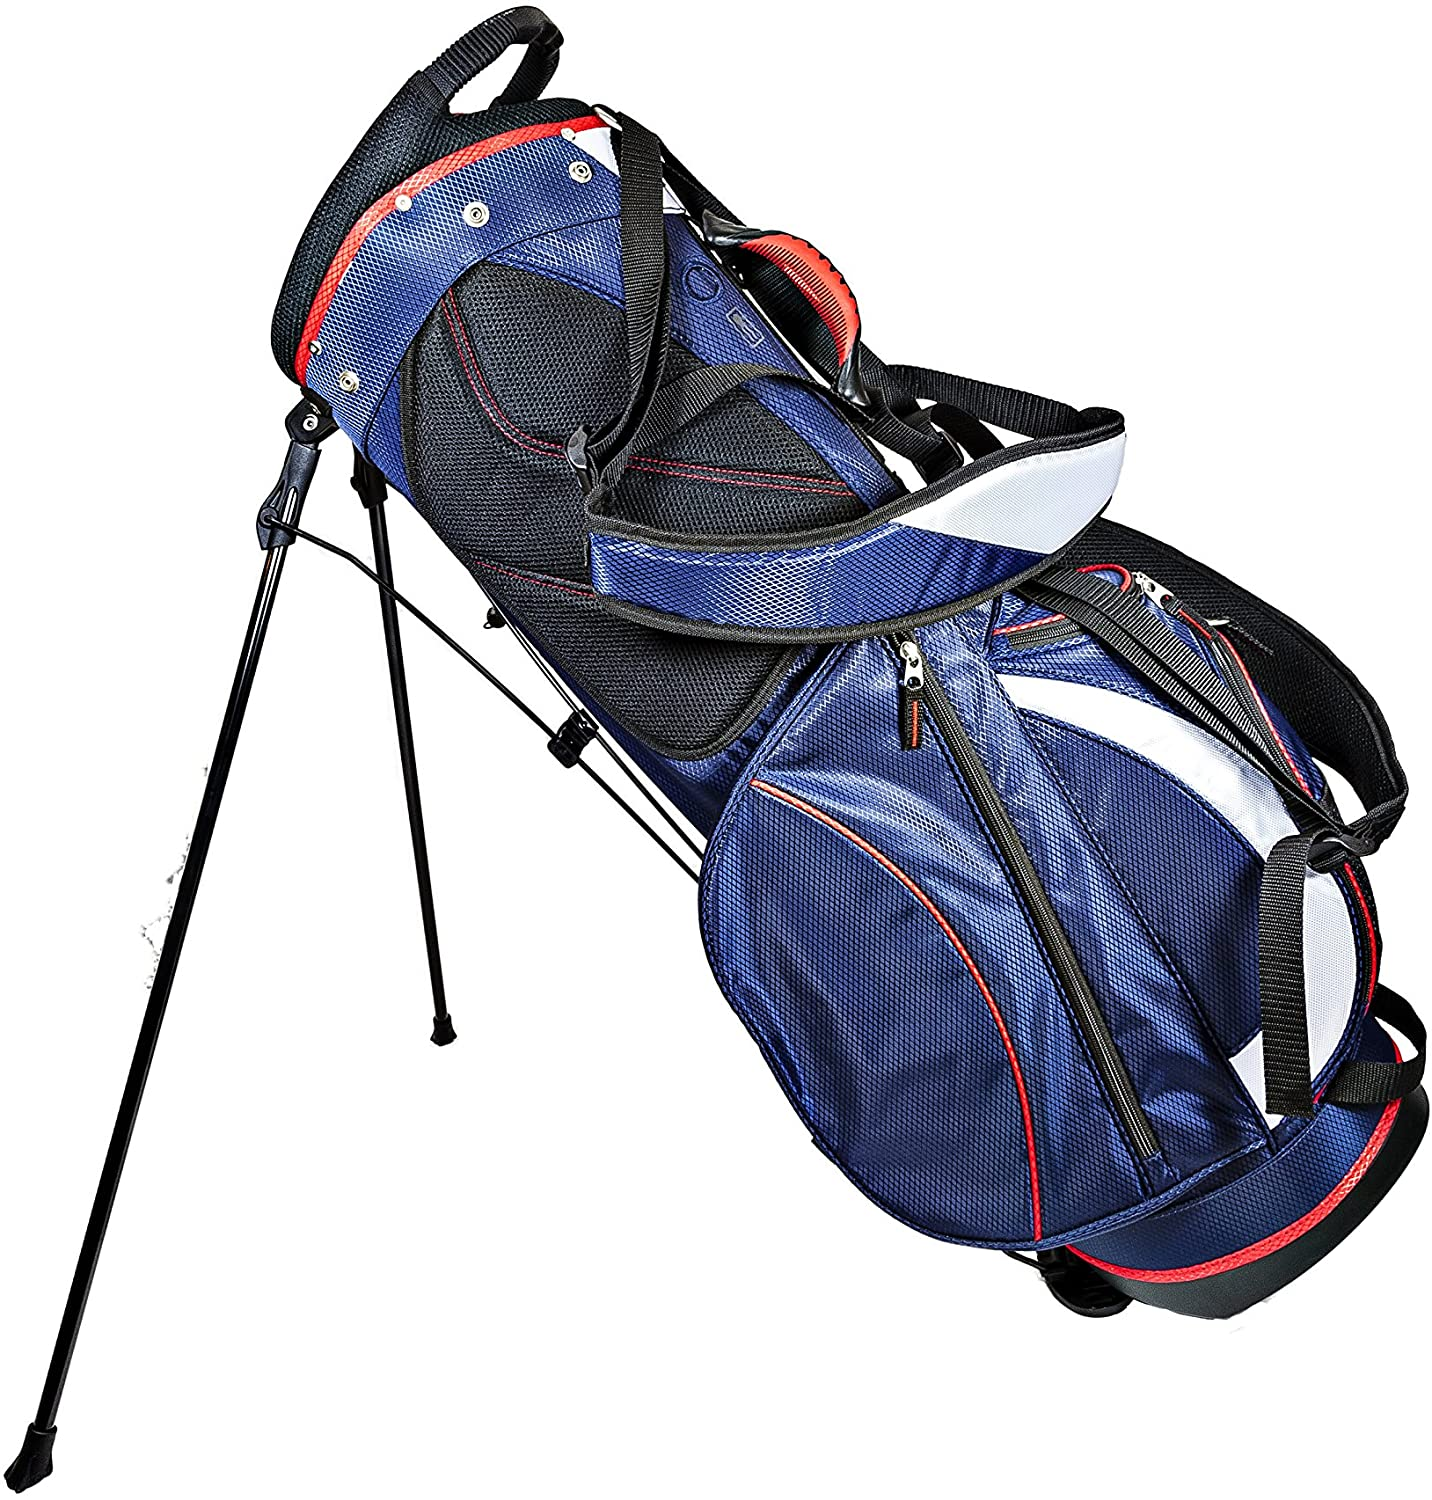 Club Champ Deluxe Stand Golf Bag